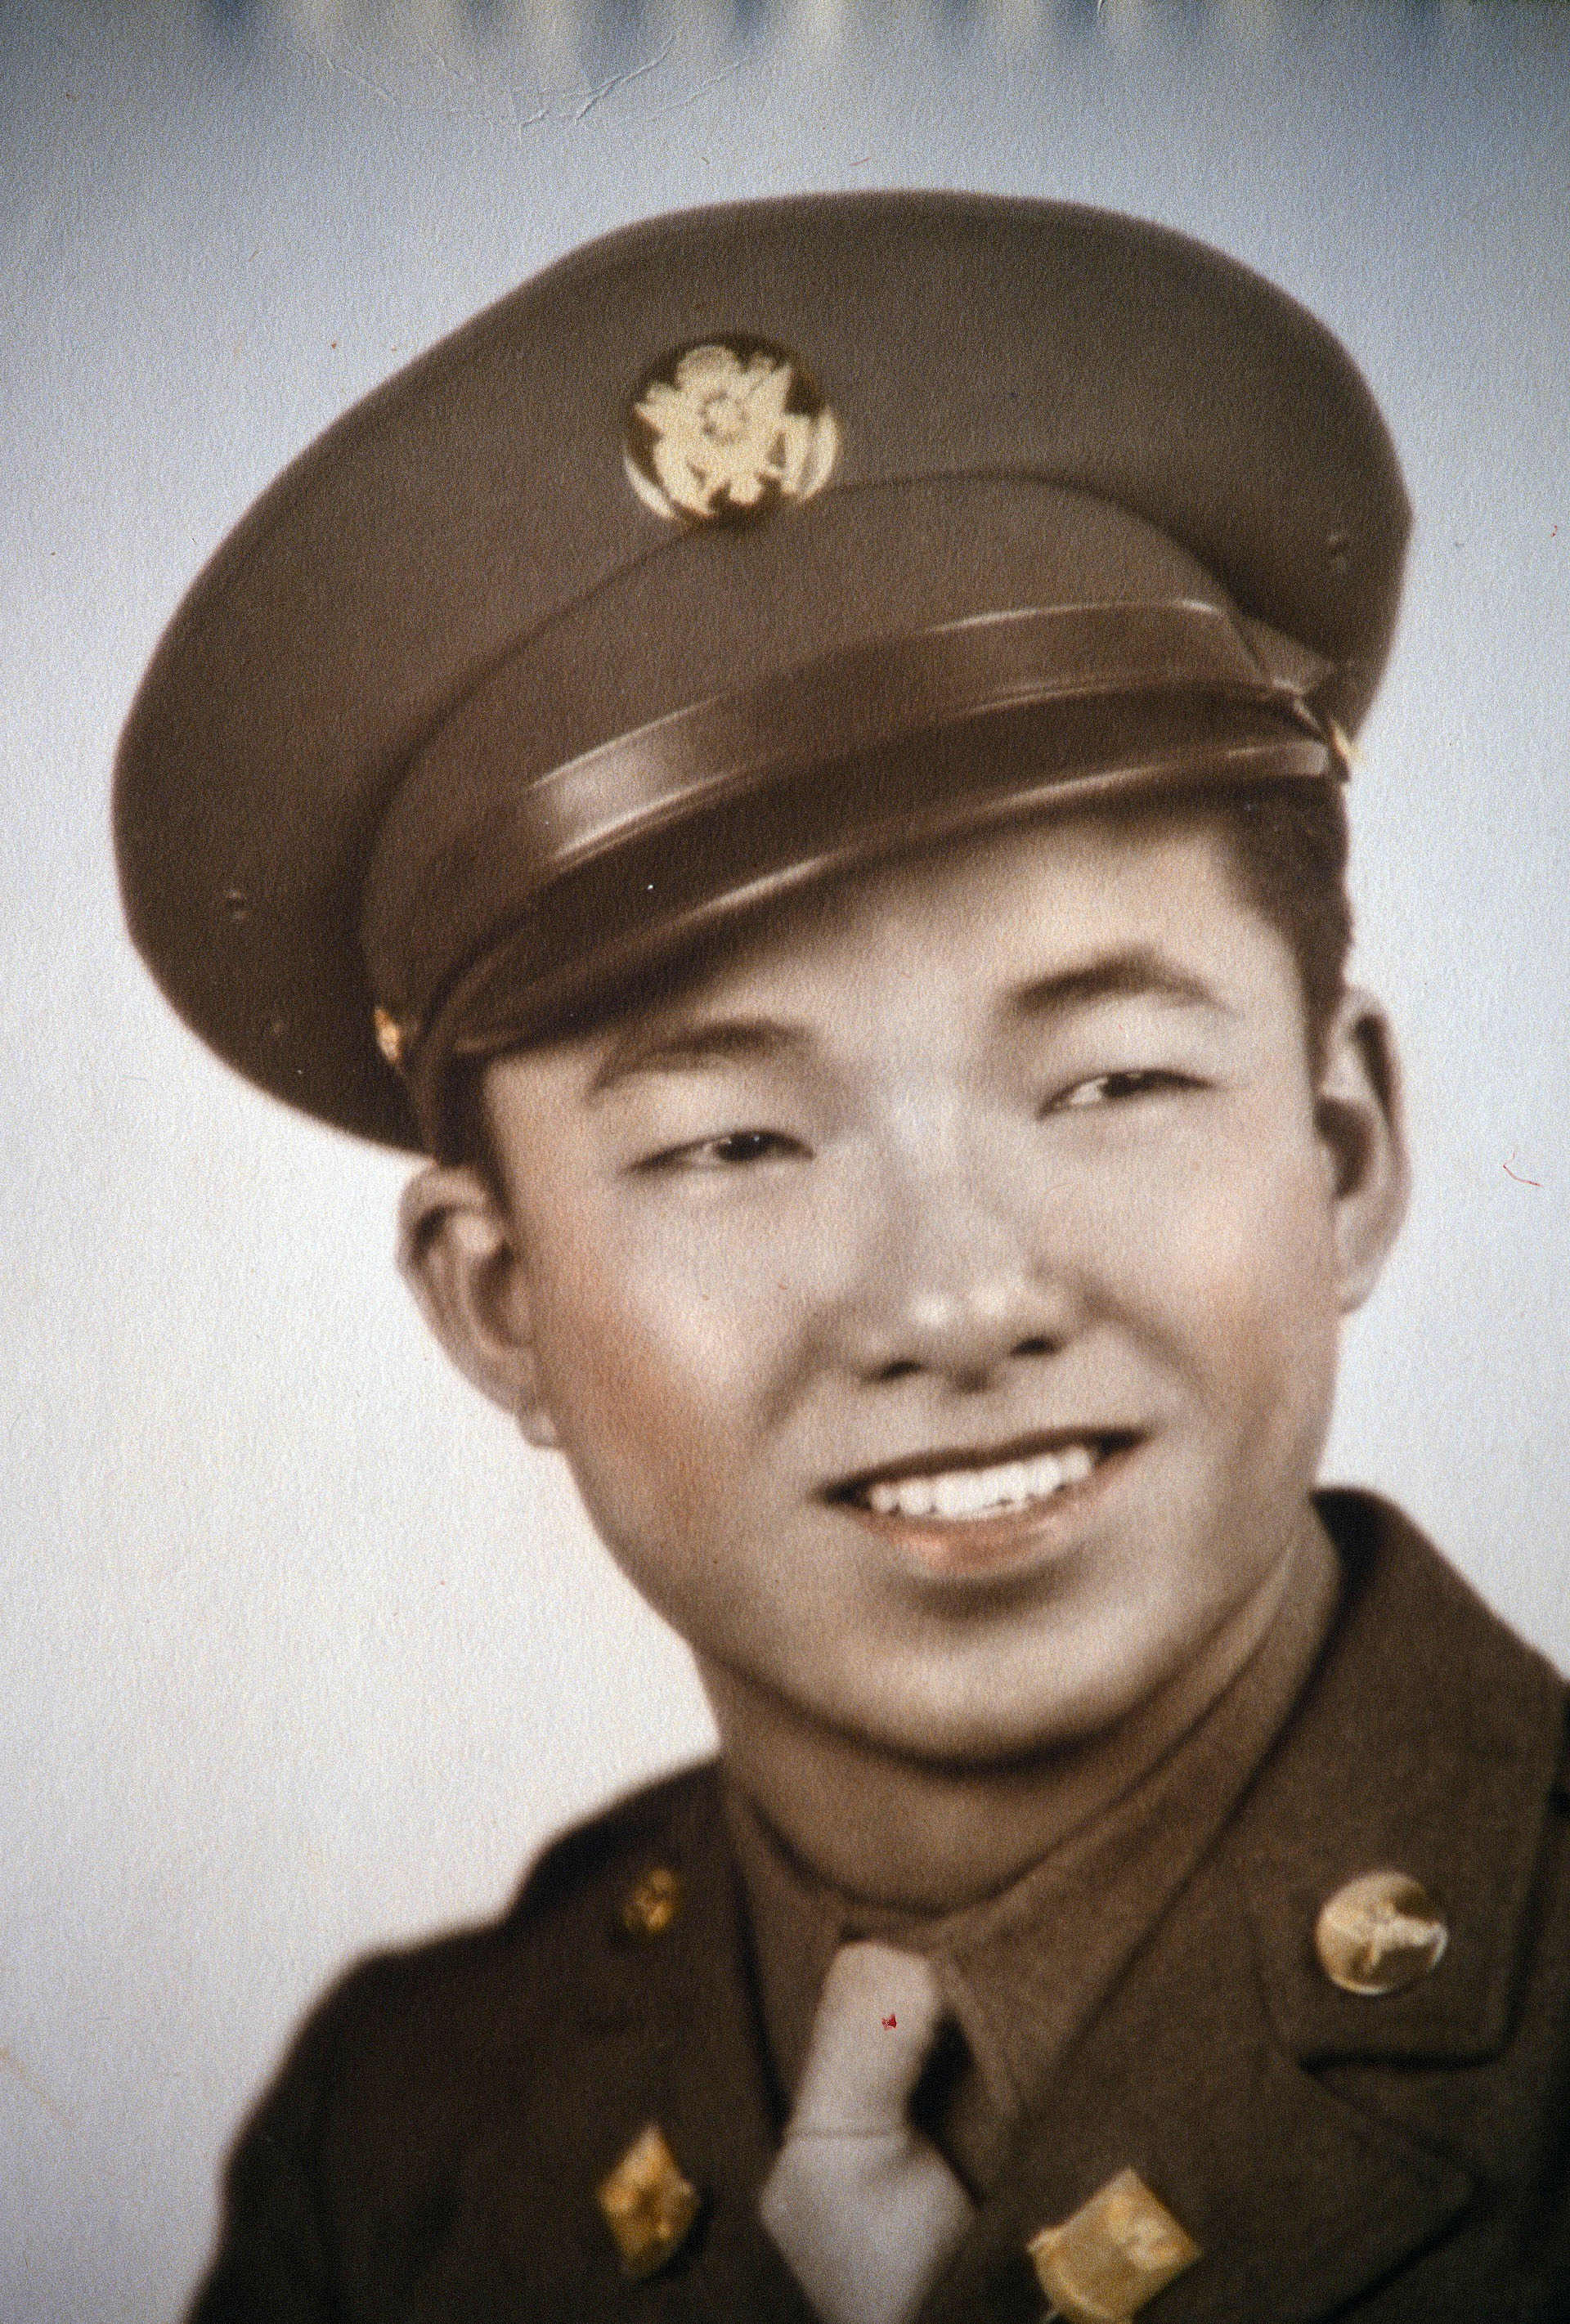 Henry Ong Jr. in Uniform